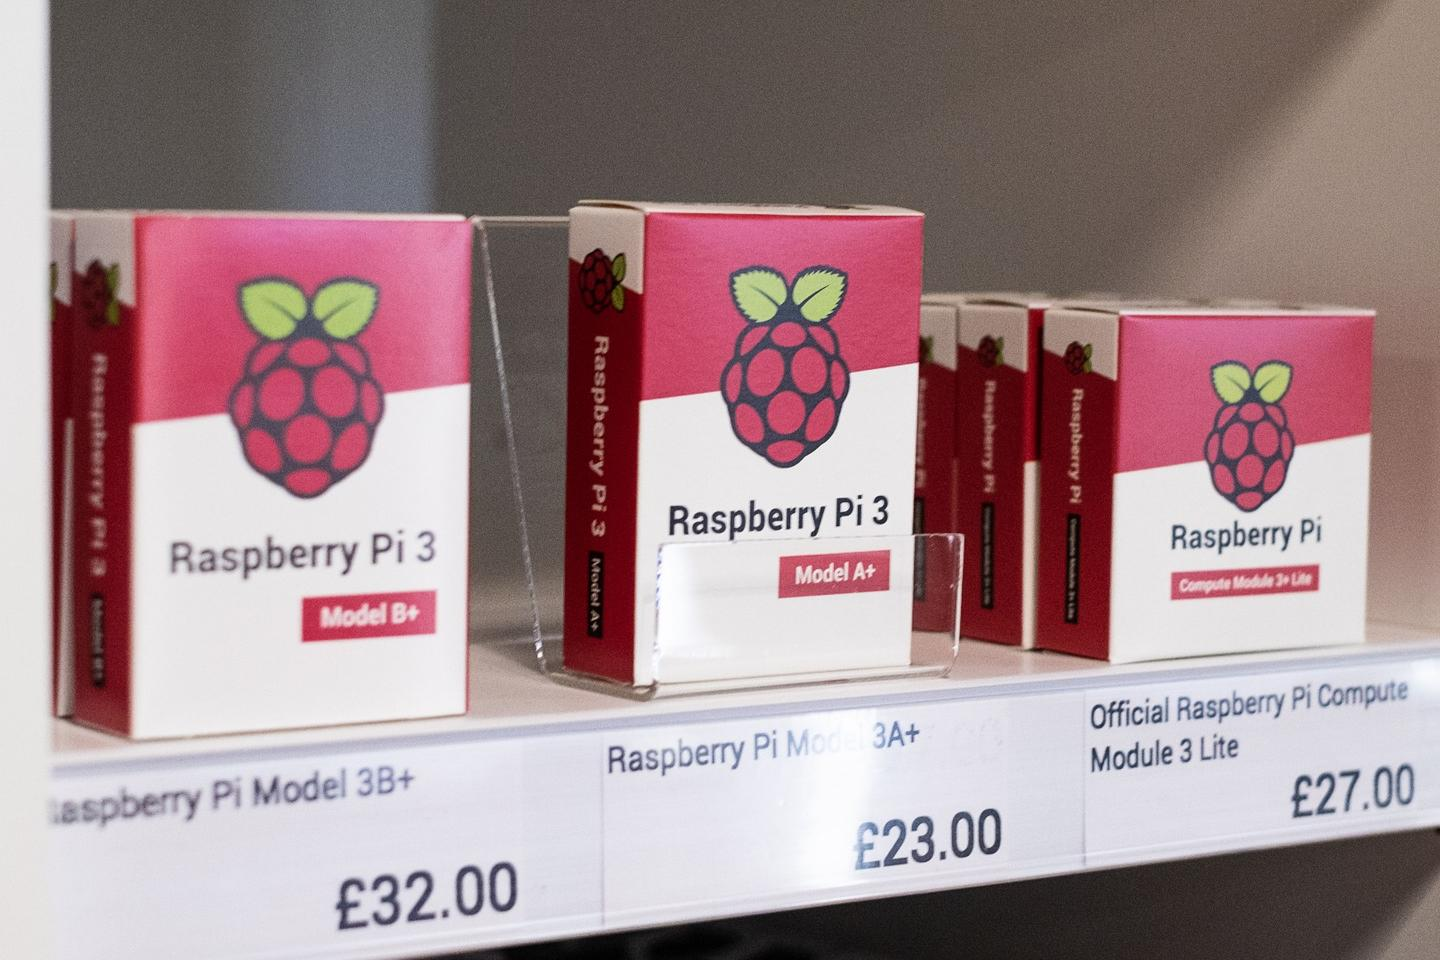 Current generations of Raspberry Pi computer boards are on sale at the Cambridge, UK, retail store